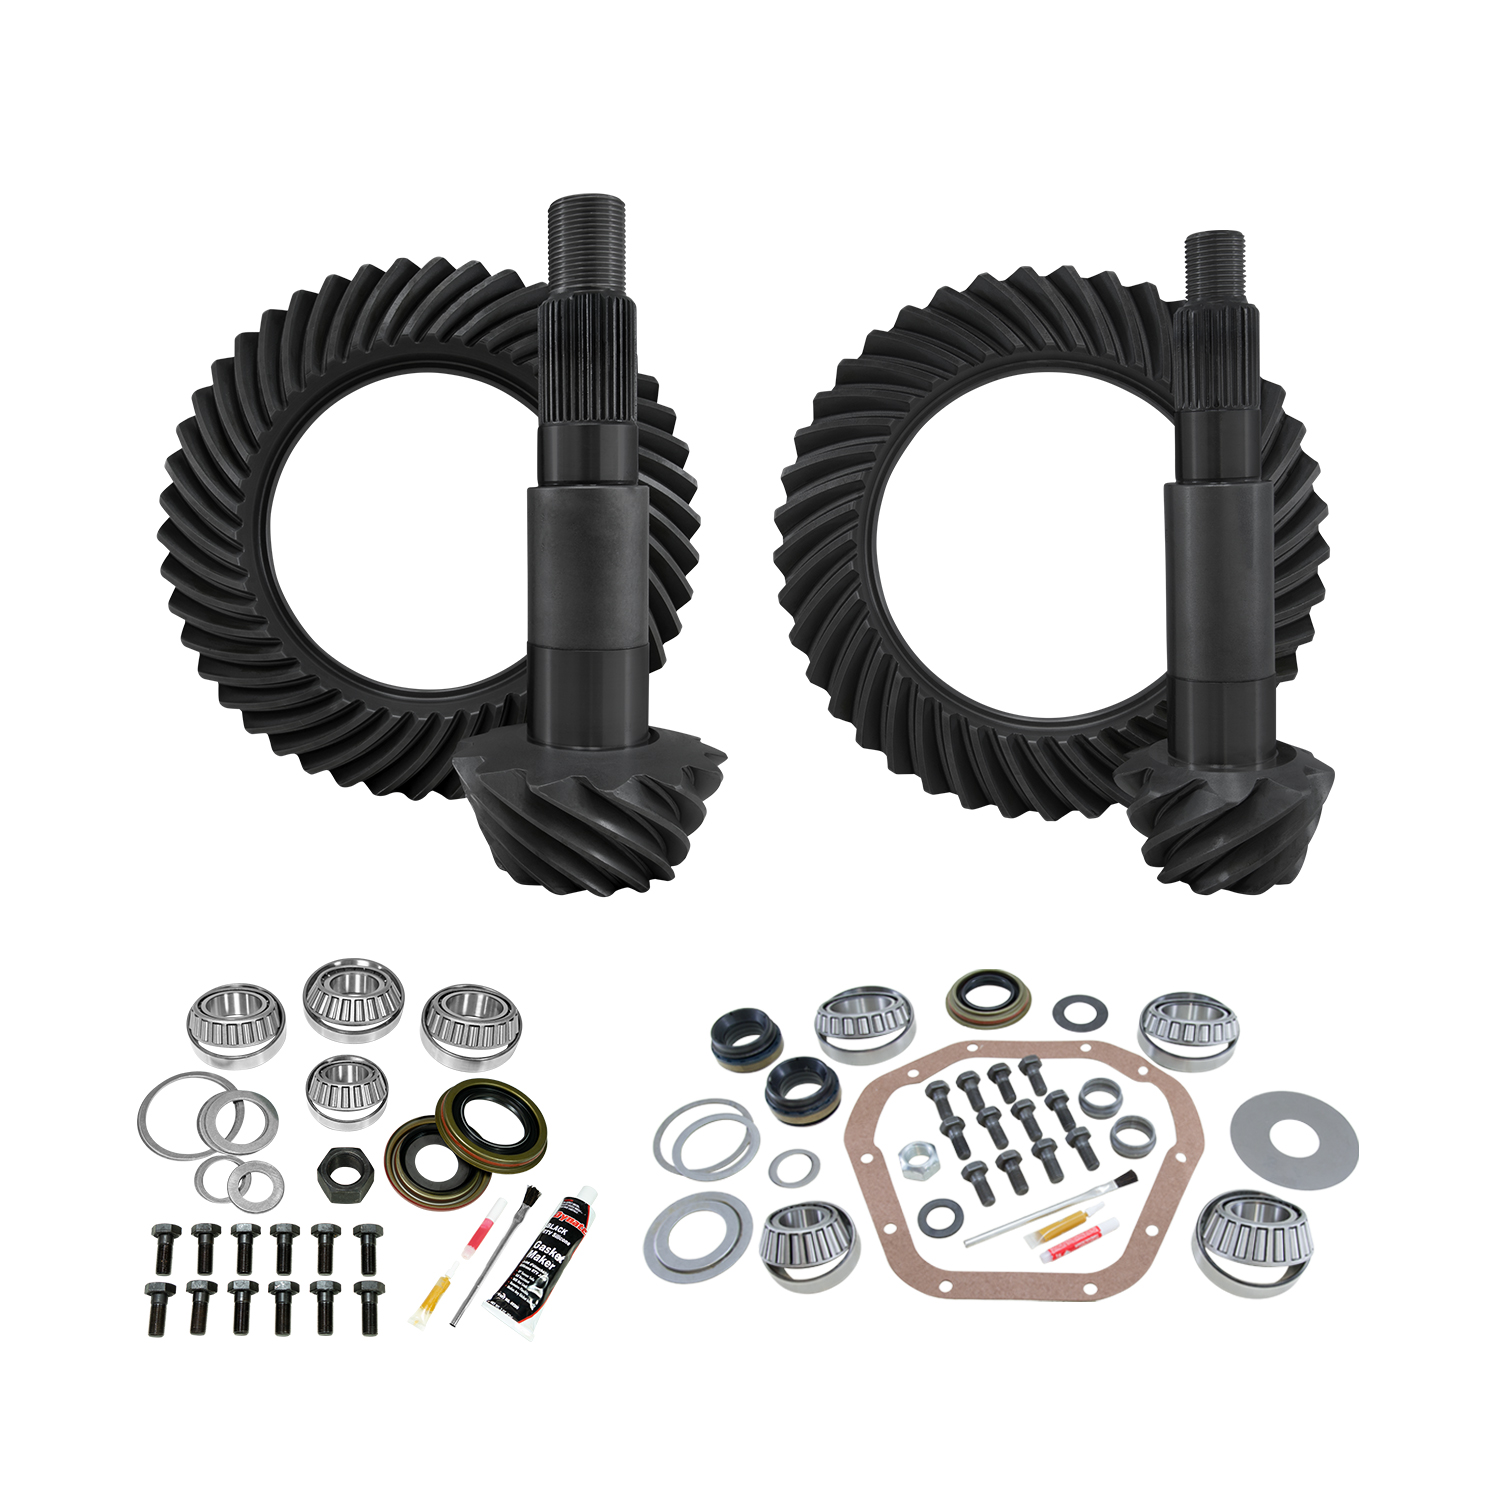 YGK146 - Yukon Complete Gear and Kit Pakage for F350 Dana 80 Thick Rear & Dana 60 Front, 4:11 Gear Ratio